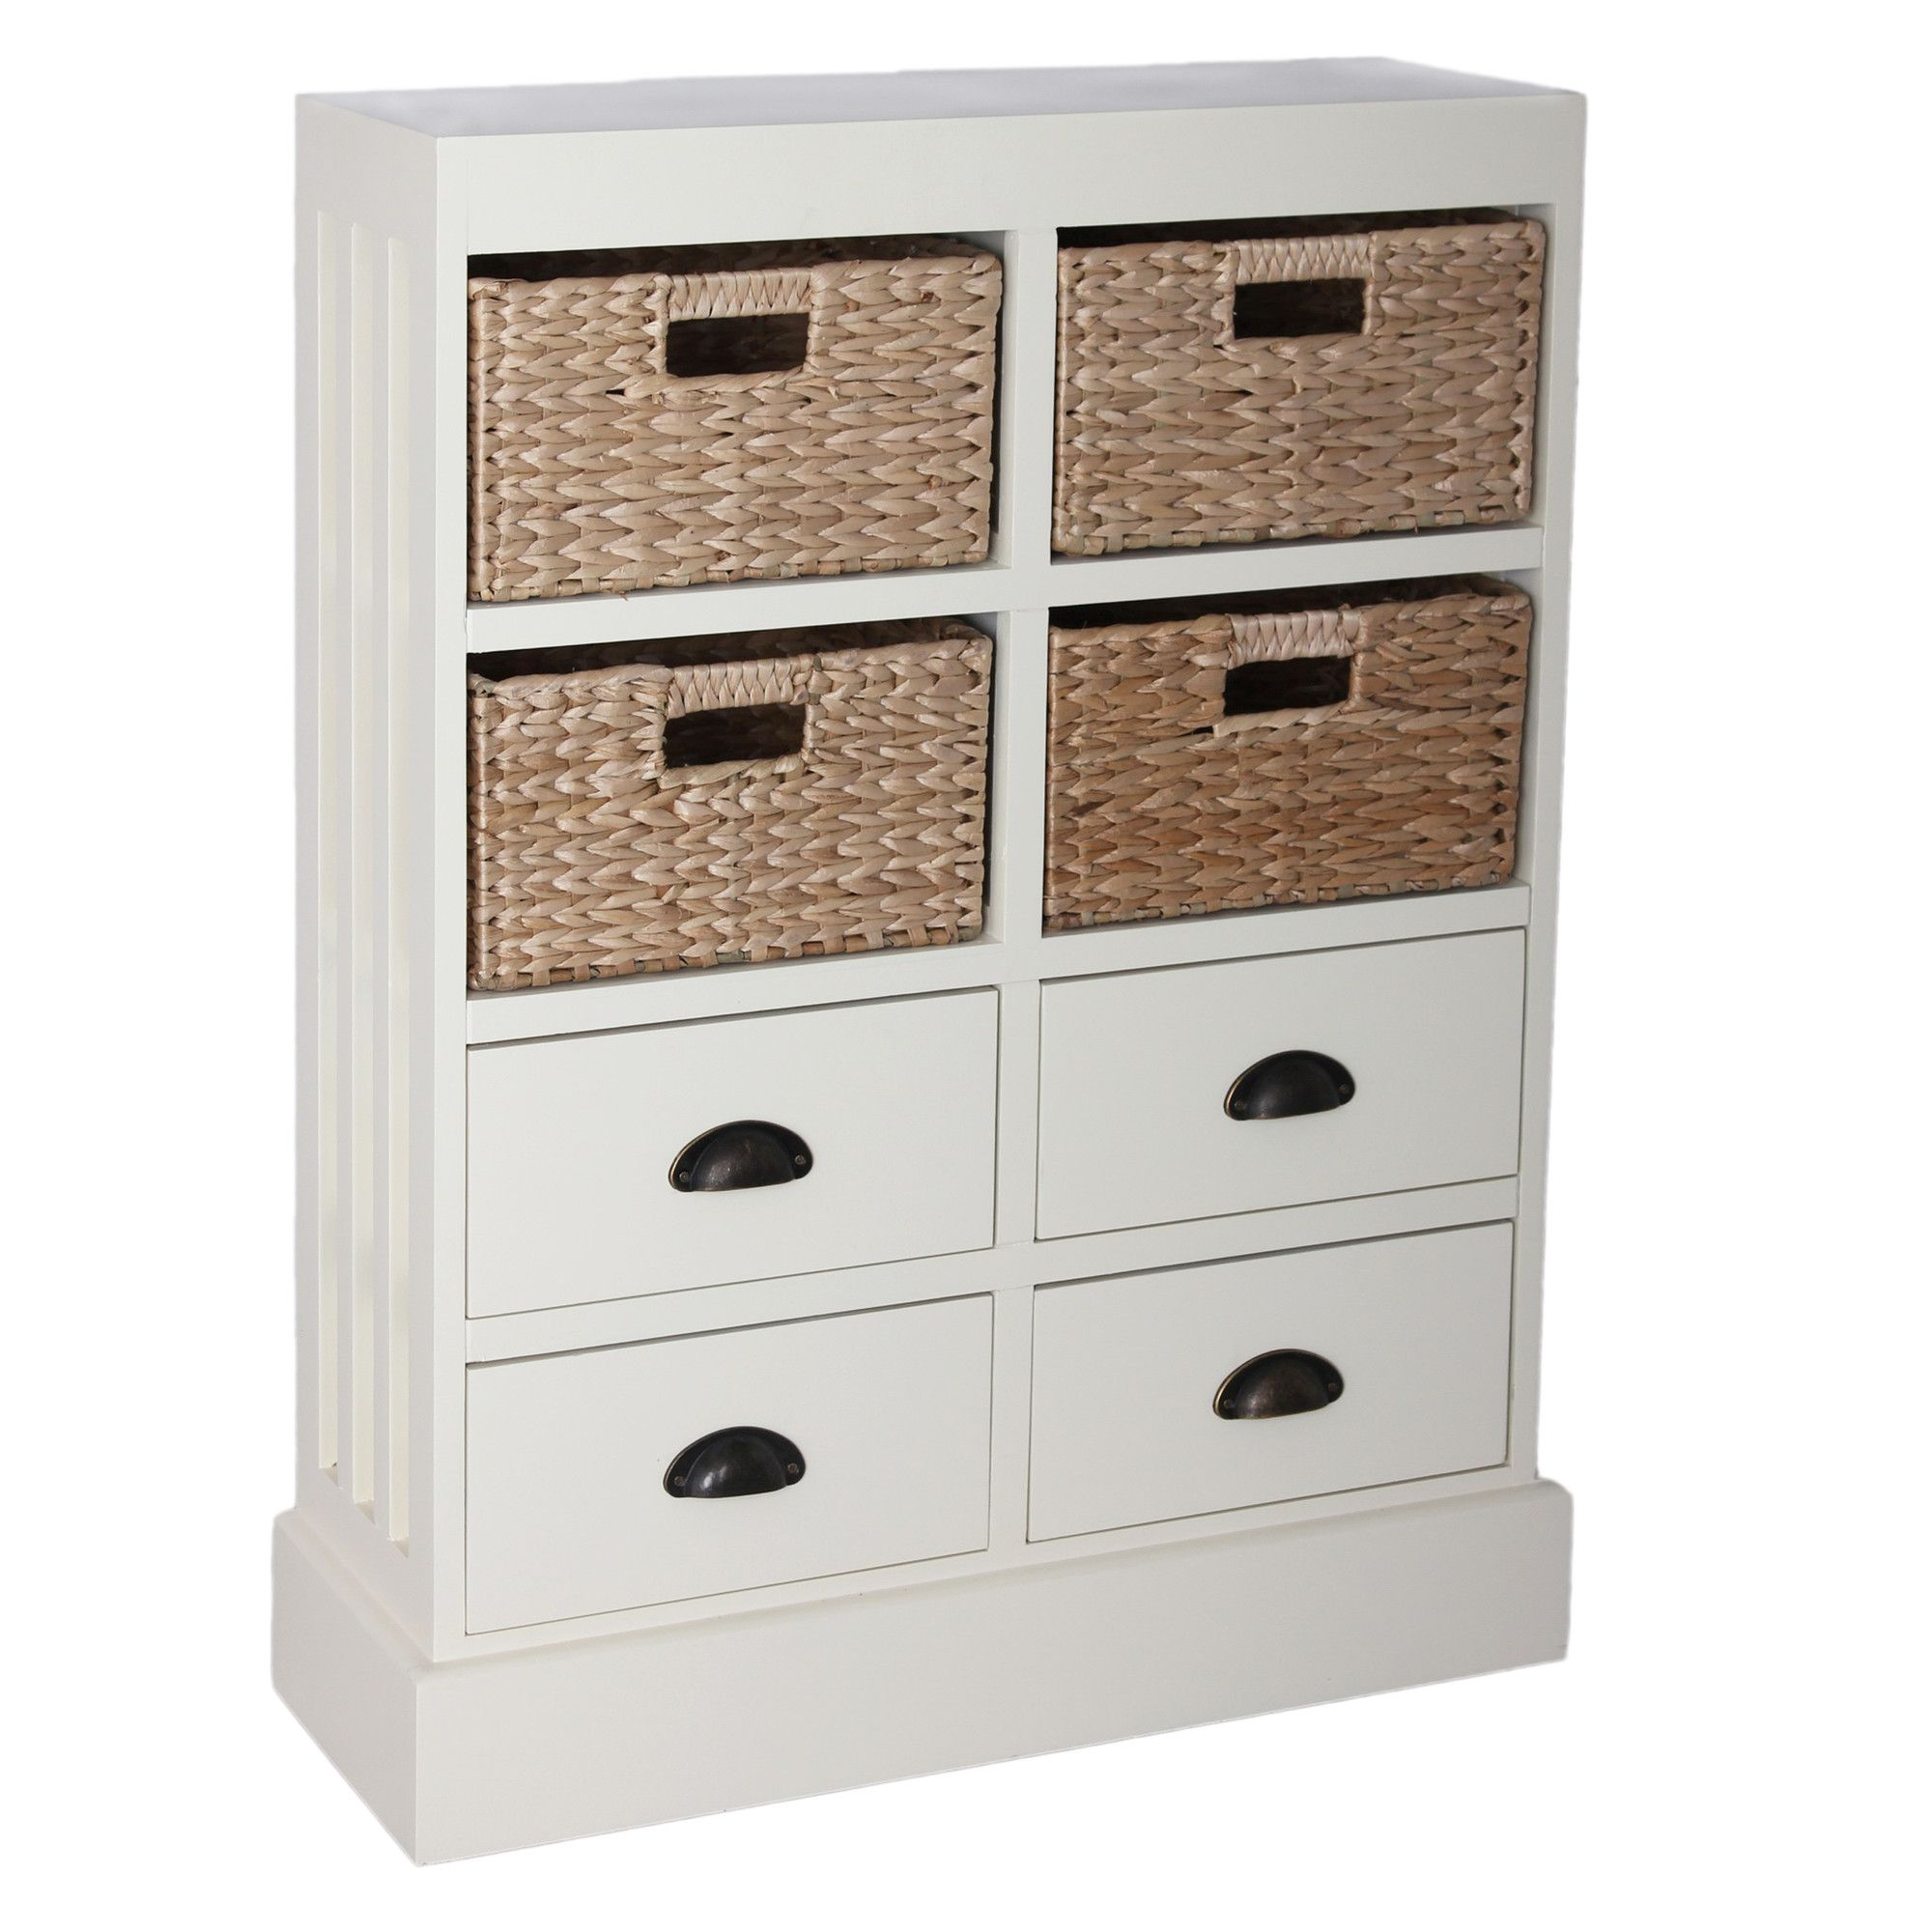 furniture sliding storage media striped wooden tall door knob with grey laminate and shoe on double flooring doors white wayfair cabinets mirror bedroom cabinet interior steel